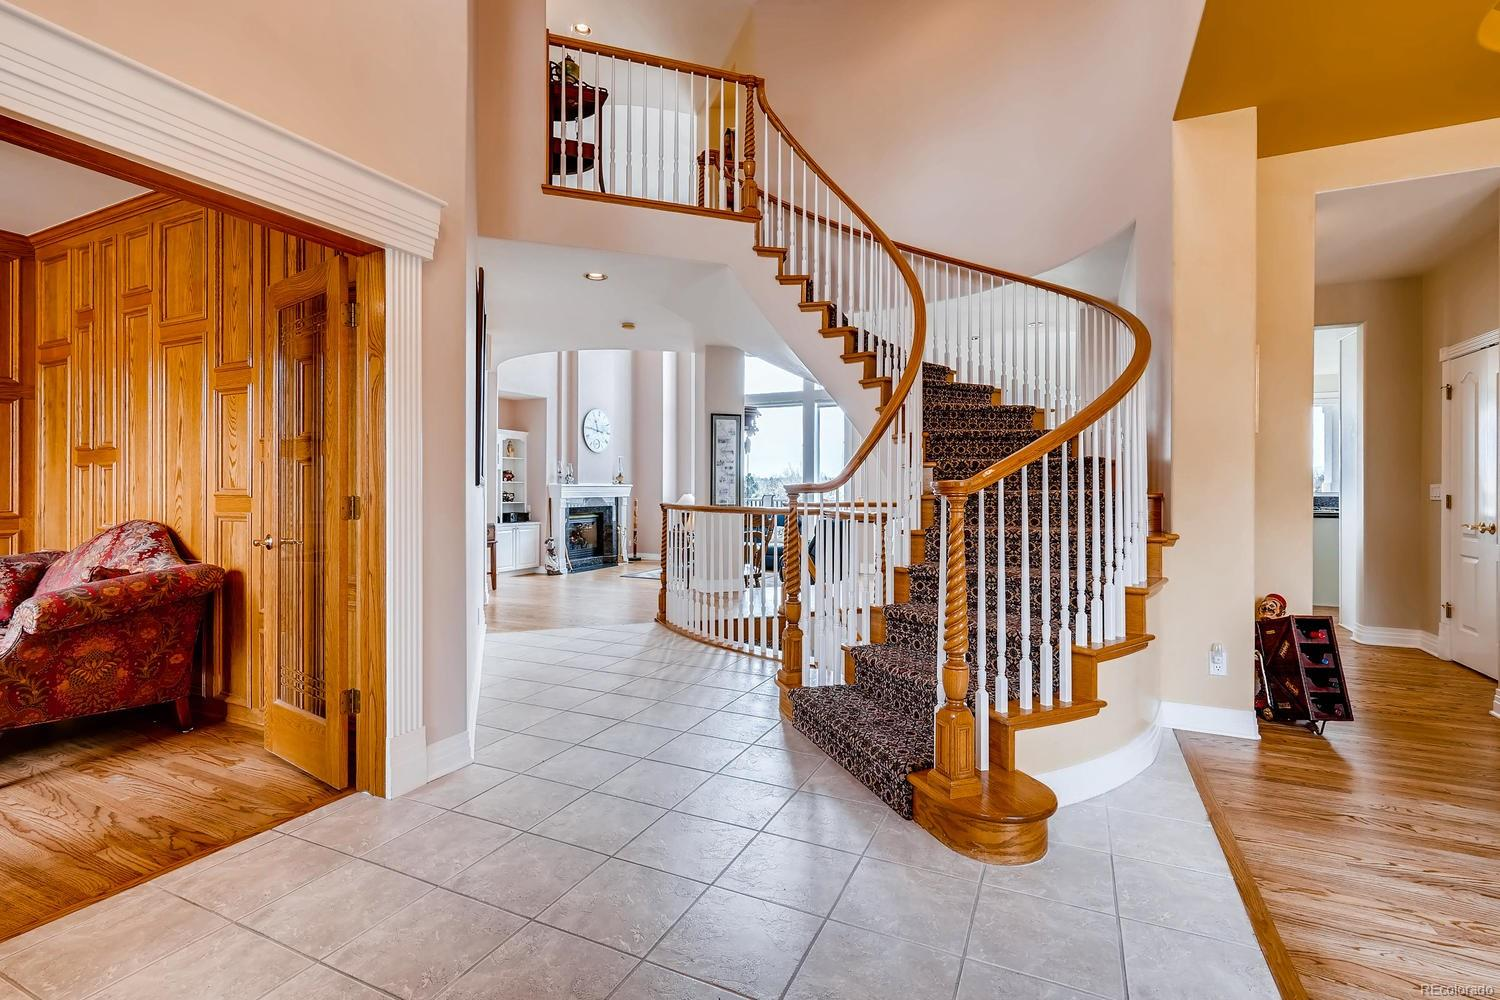 Foyer - Spiral Staircase to upper level and walkout basement